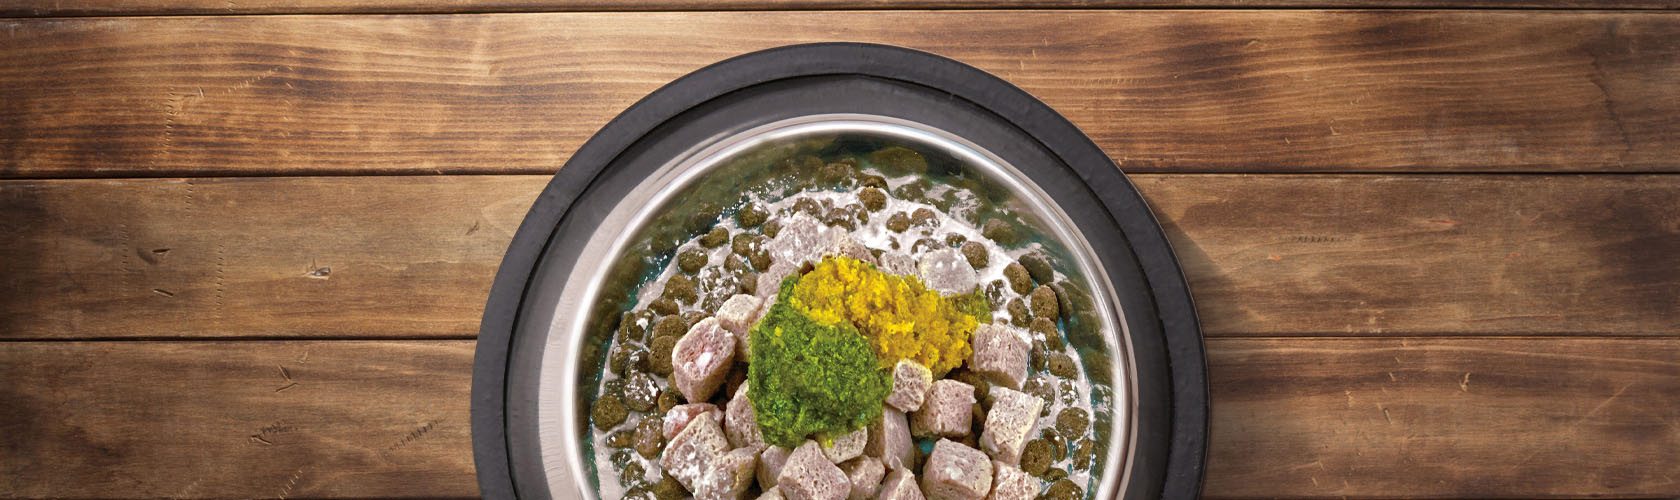 Wet and dry pet food in a bowl on wooden floor